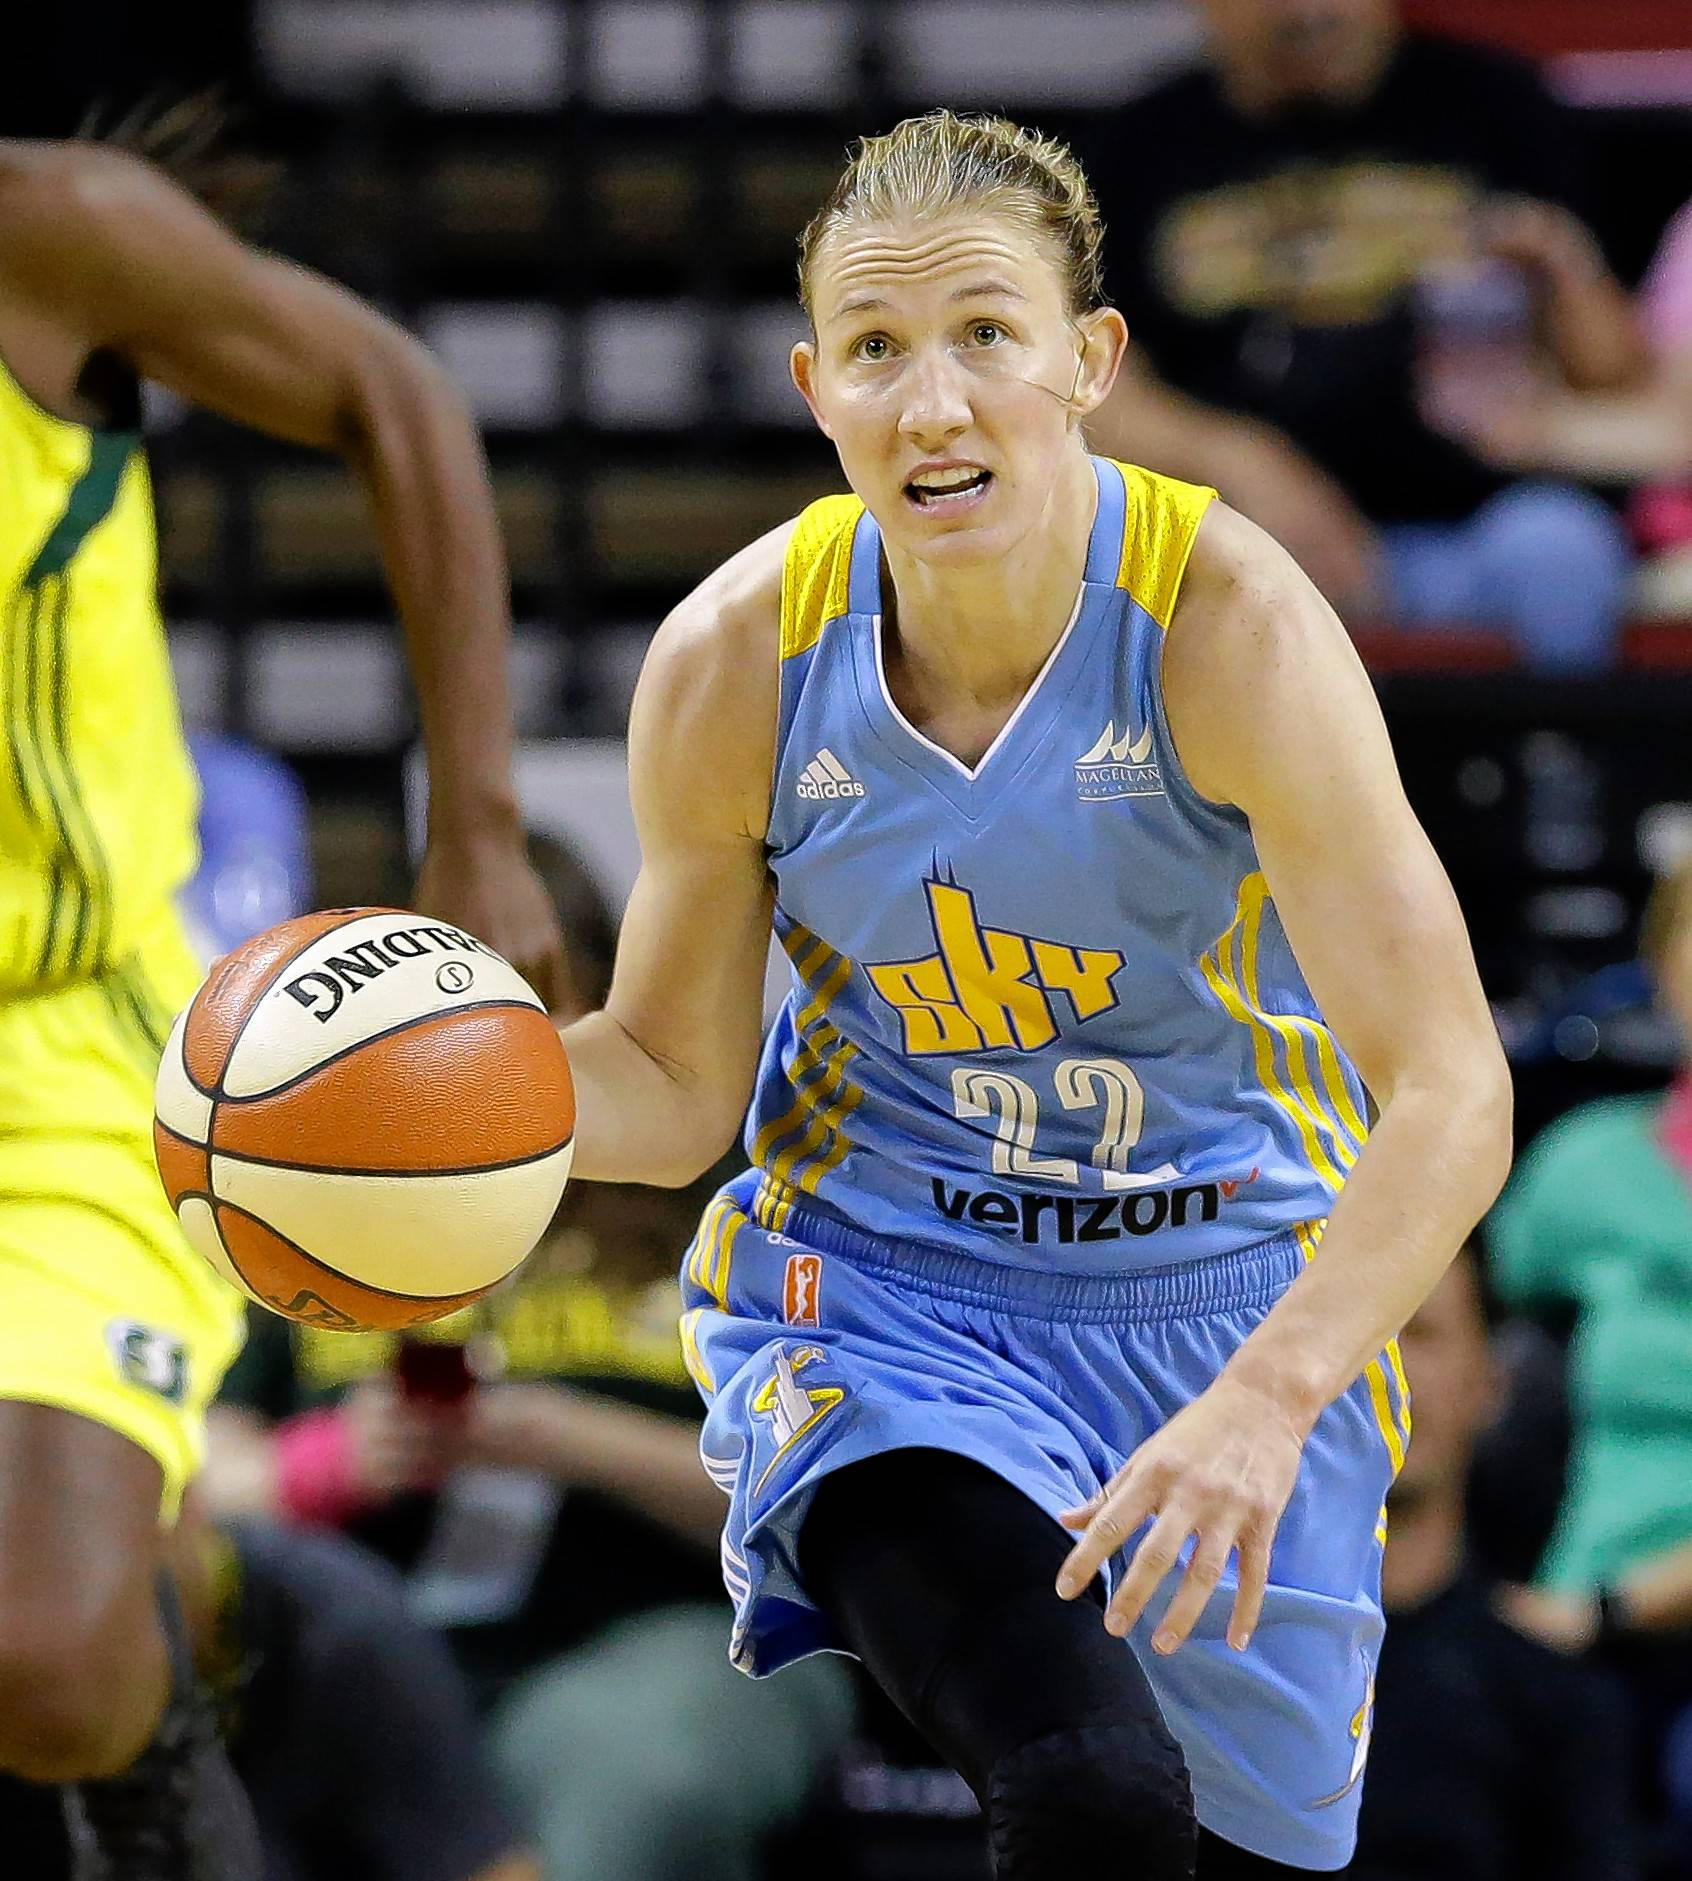 With a string of double-double performances, Chicago Sky point guard Courtney Vandersloot has helped her team get back in the playoff picture.